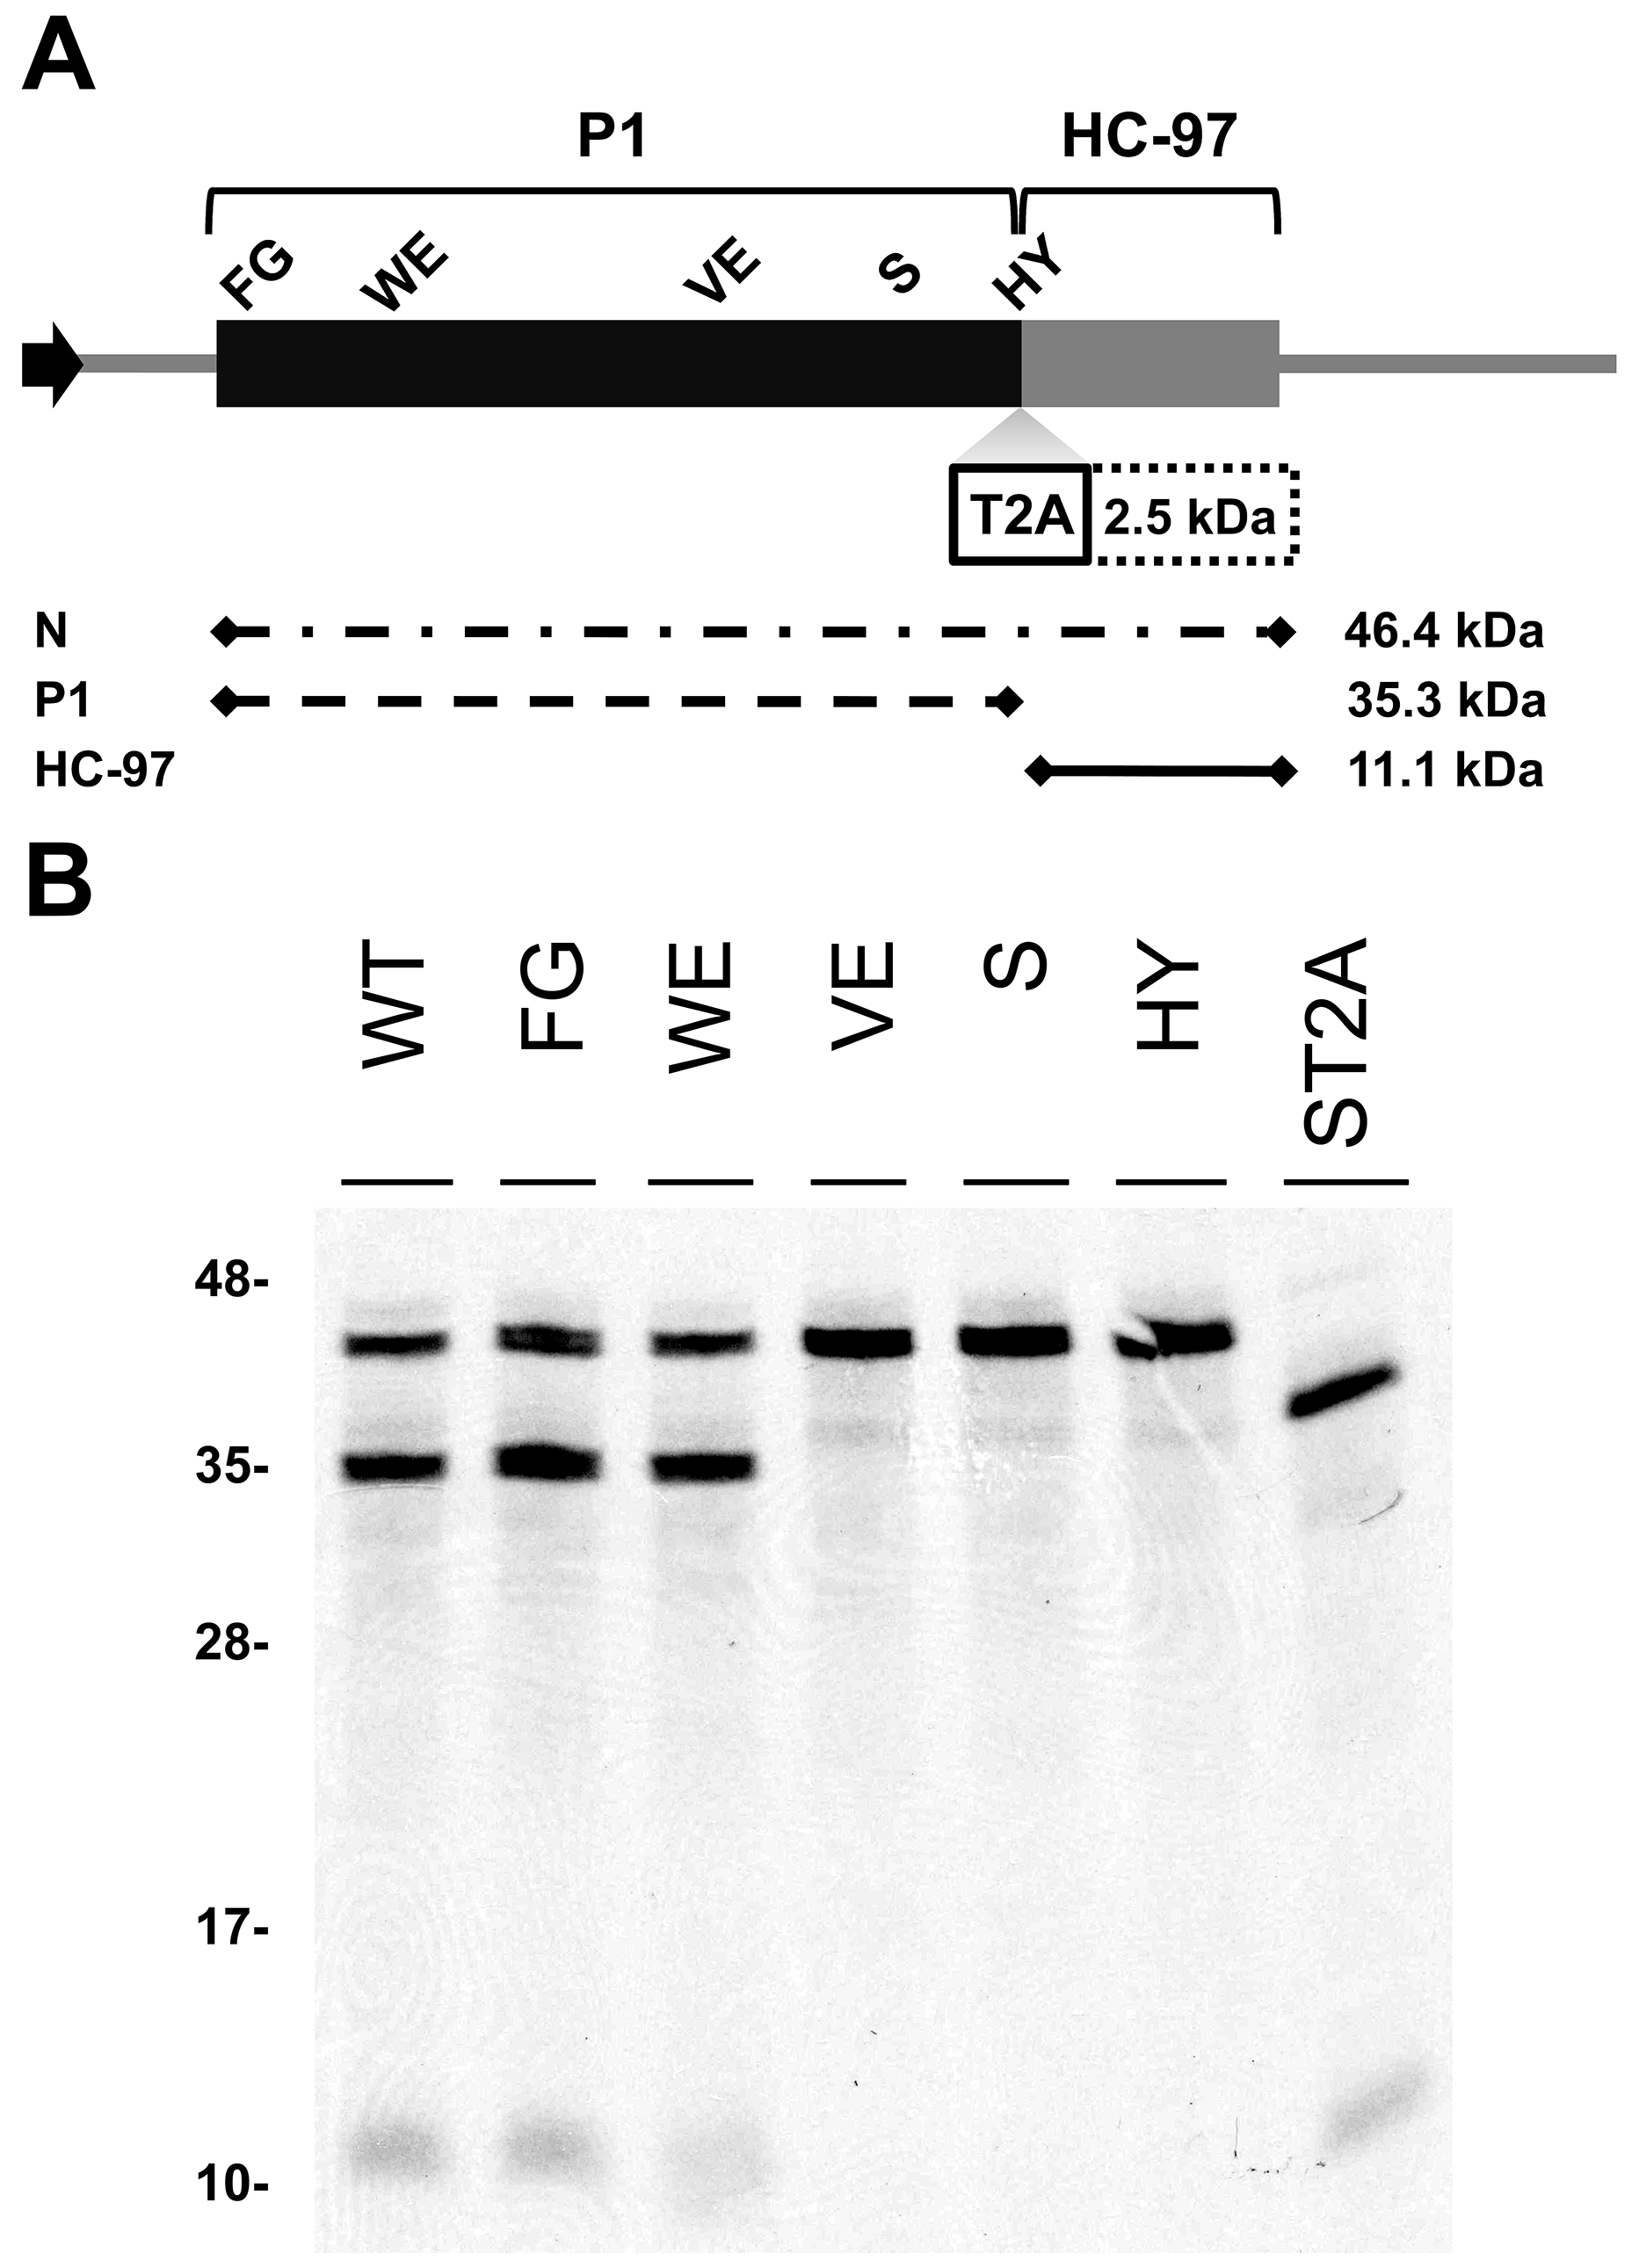 Involvement of P1 conserved motifs in protease cleavage.